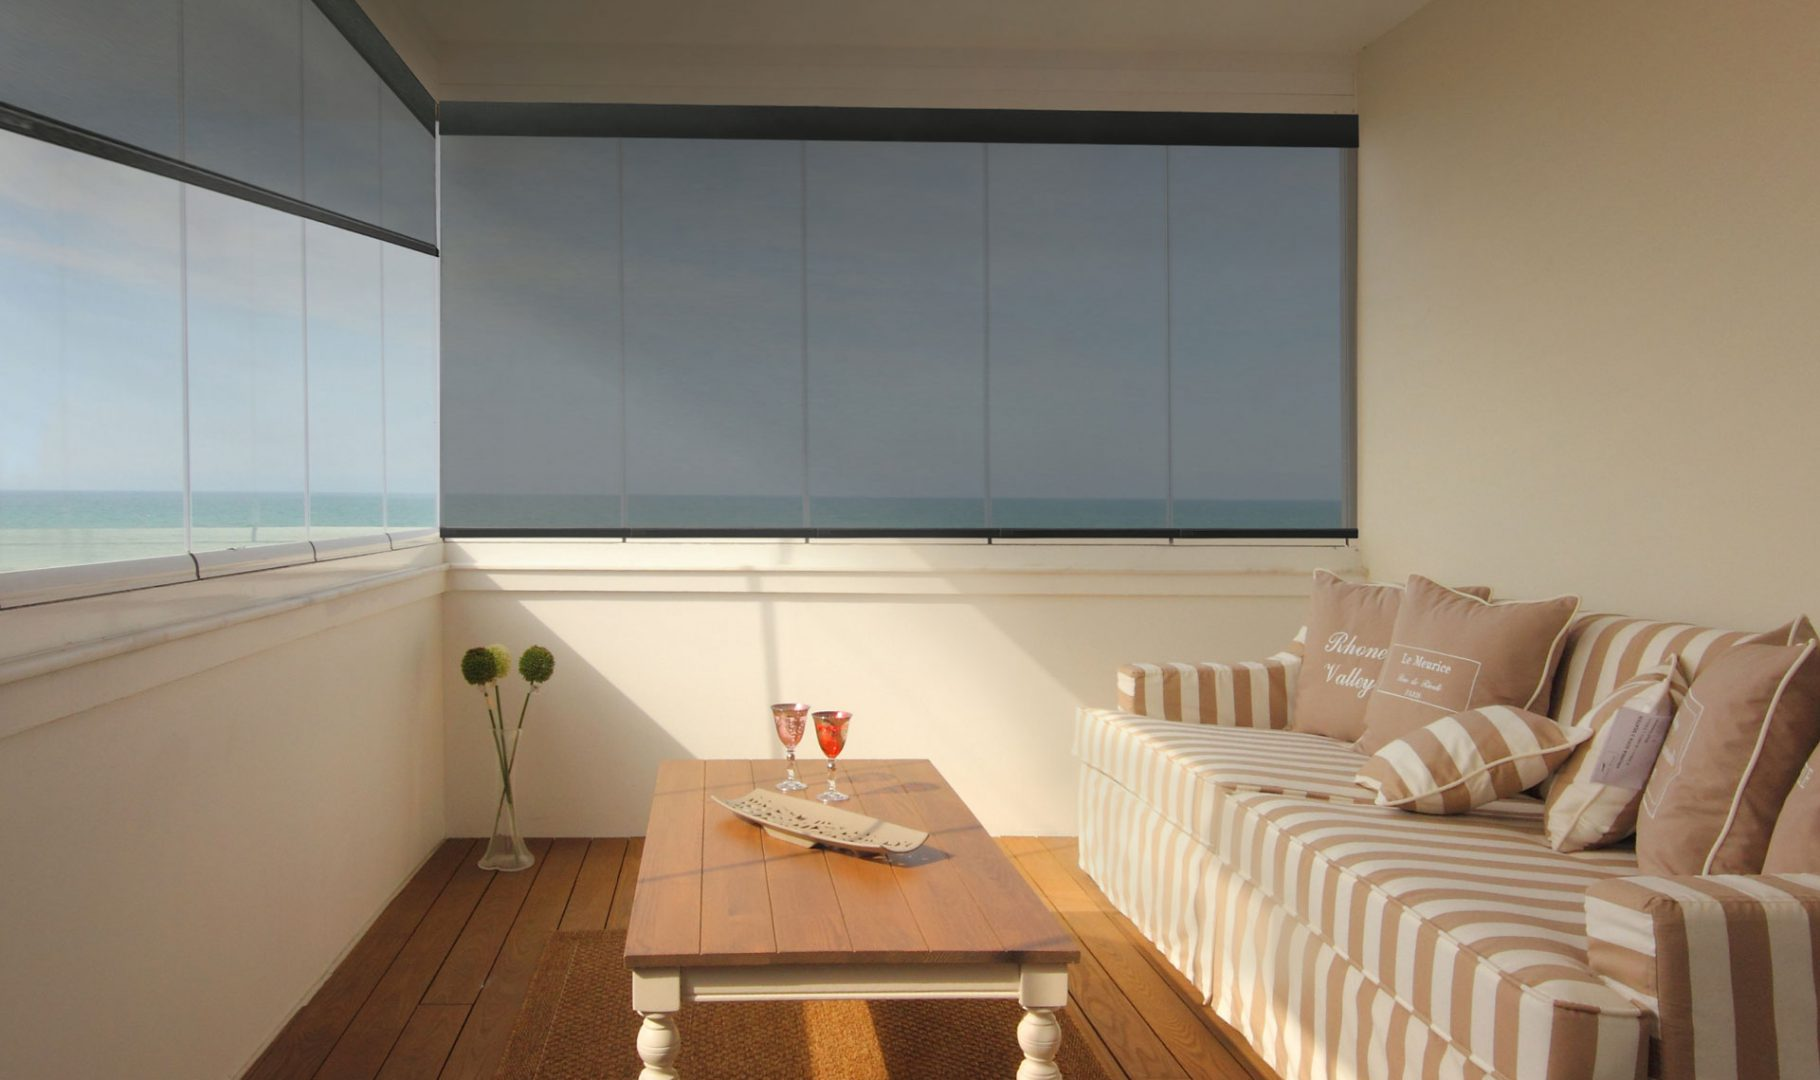 Easy-to-operate cordless solar shades for large windows